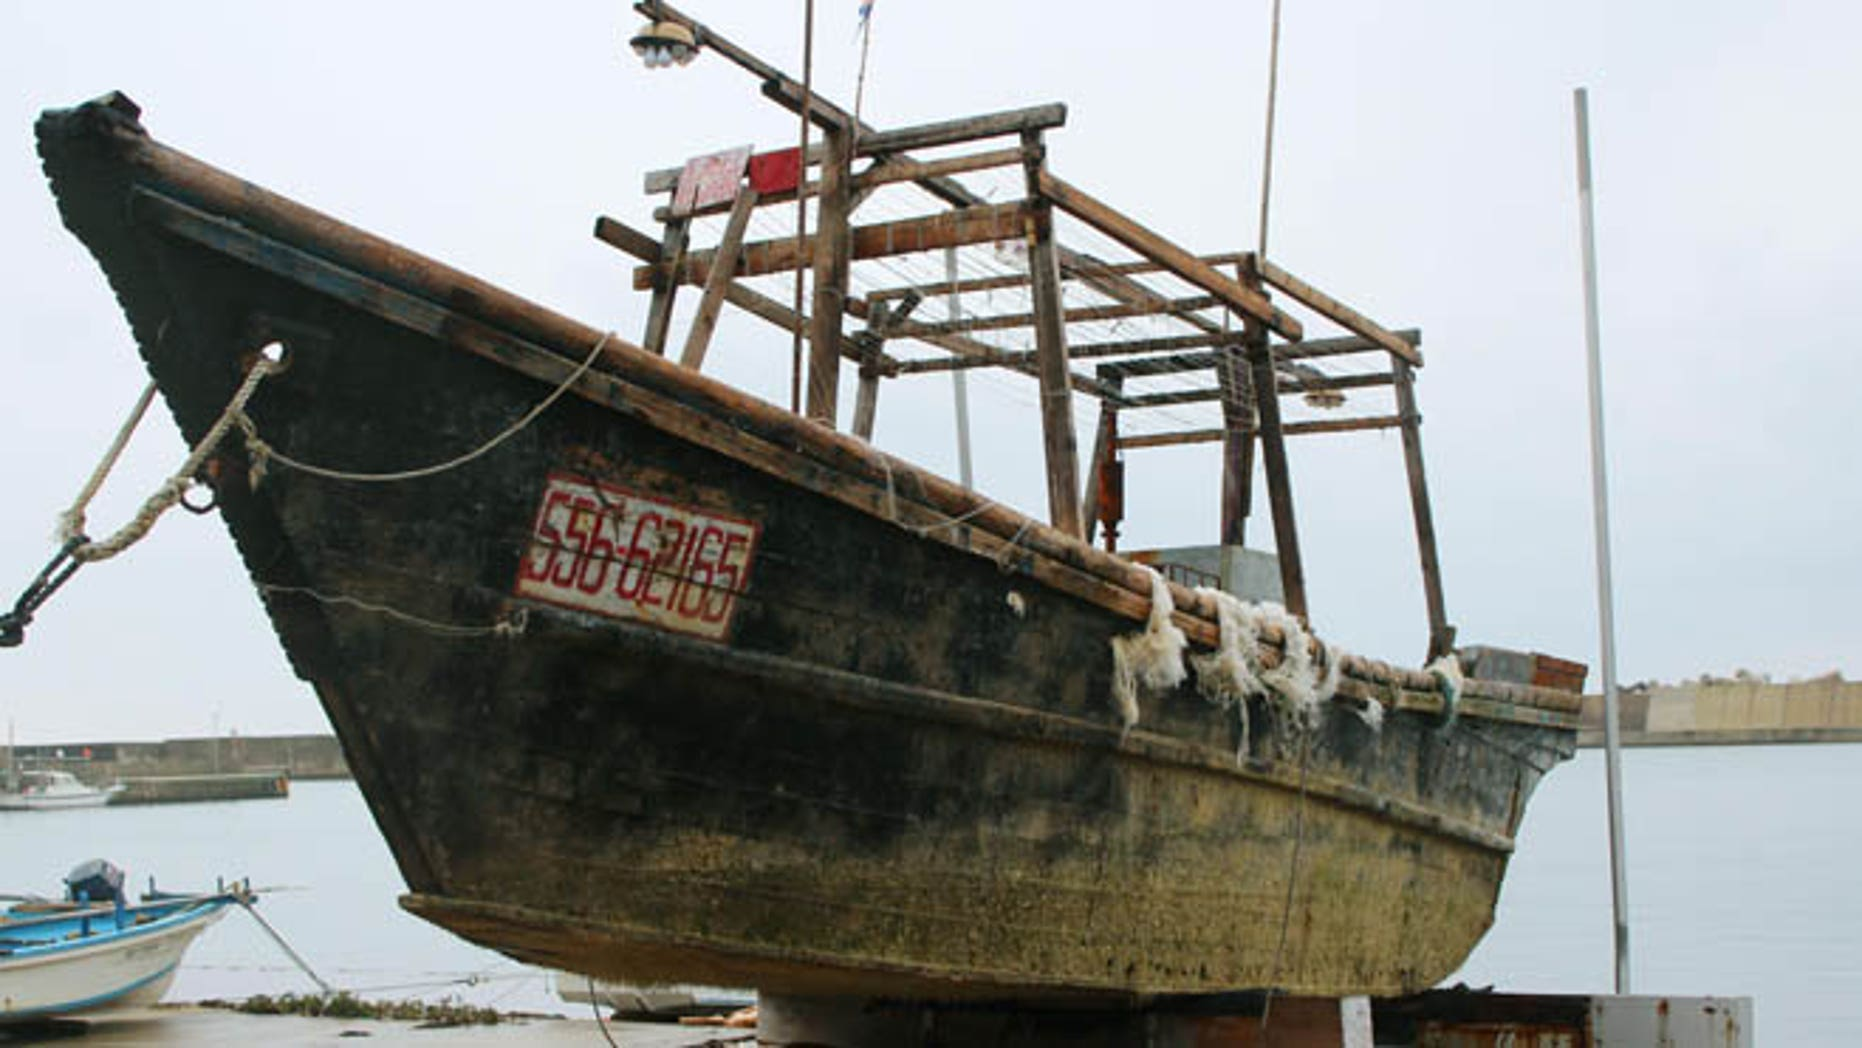 Nov. 29, 2015: A ship of unknown nationality in Wajima, Ishikawa prefecture, central Japan, after it was found in mid-November off Noto peninsula and was towed to the shore.